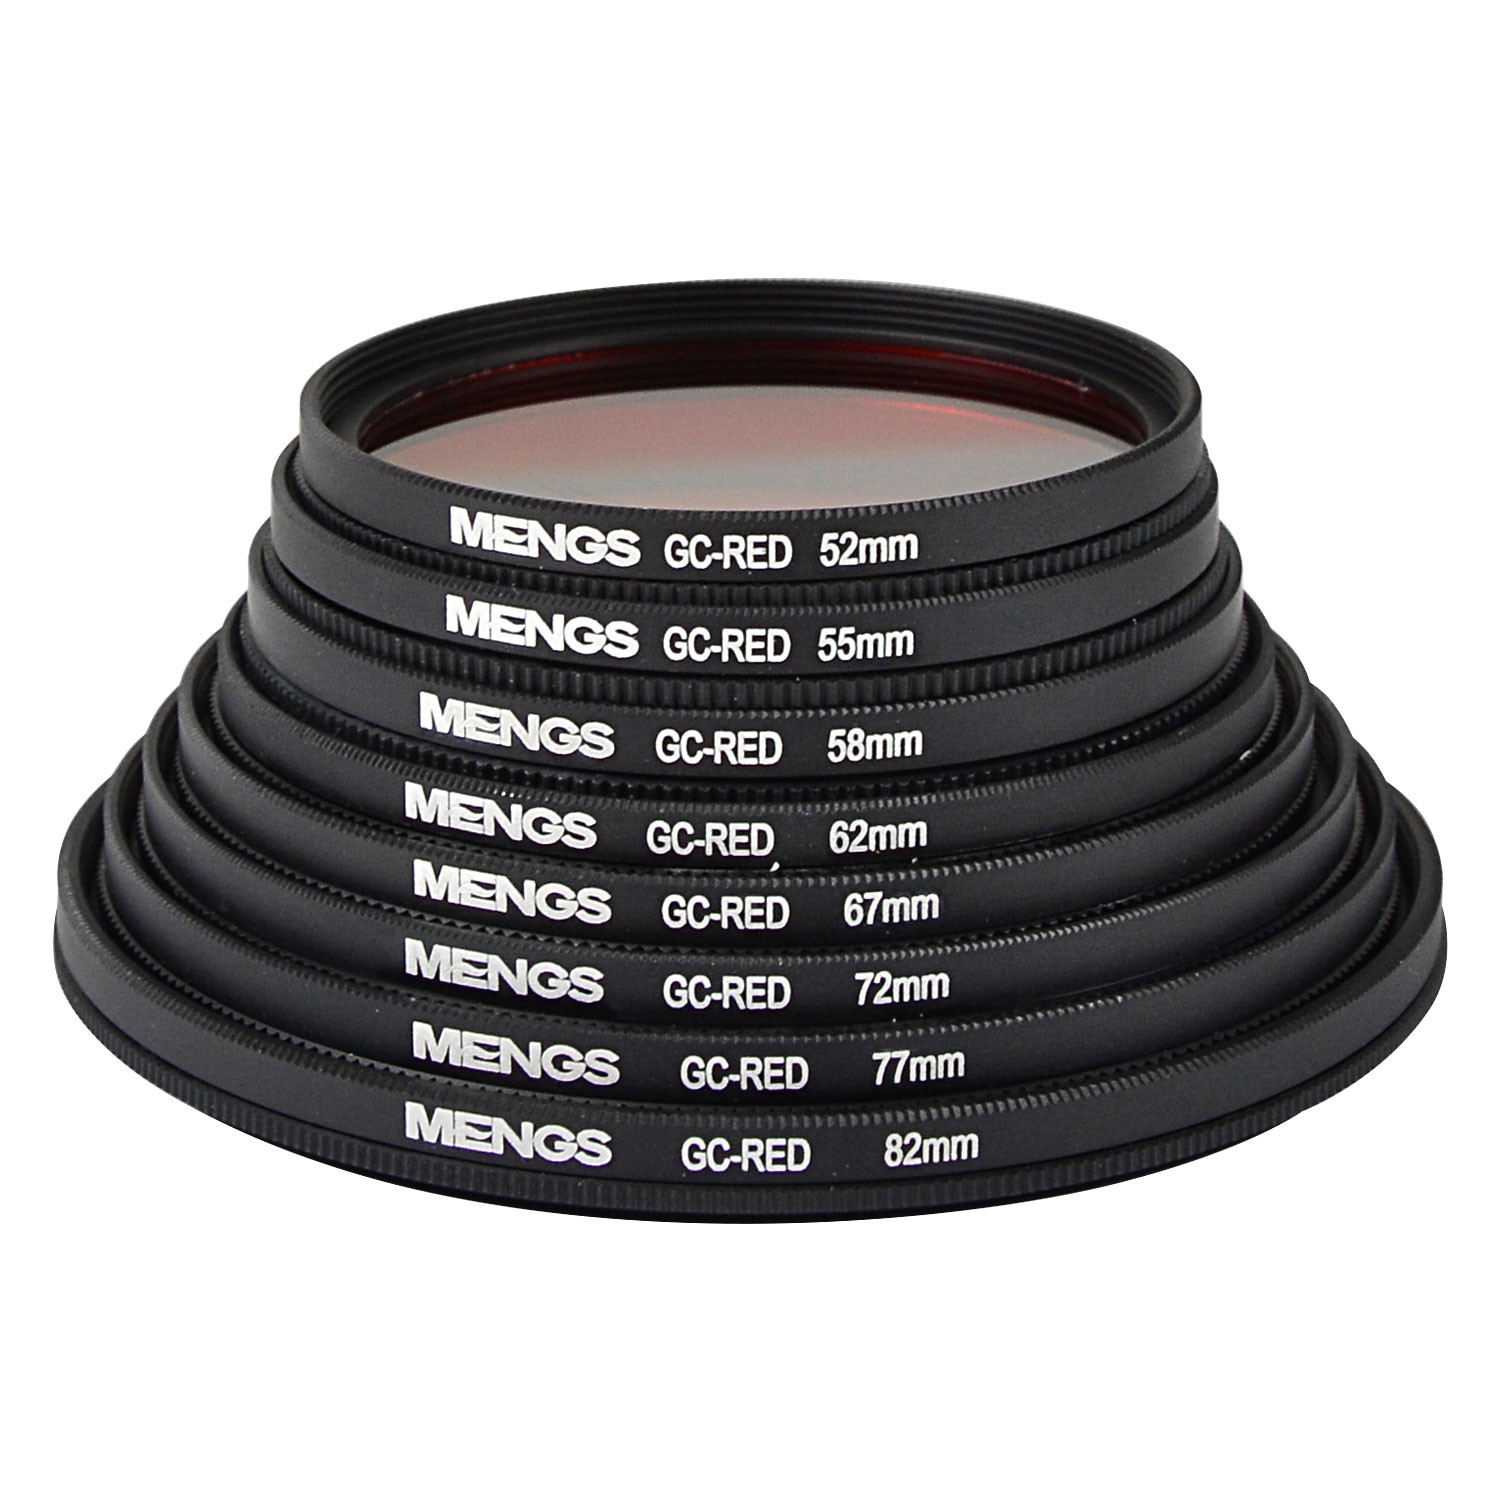 MENGS® 52mm / 55mm / 58mm / 62mm / 67mm / 72mm / 77mm / 82mm Graduated RED Lens Filter With Aluminum Frame for Canon Nikon Sony Fuji Pentax Olympus etc digital and DSLR camera